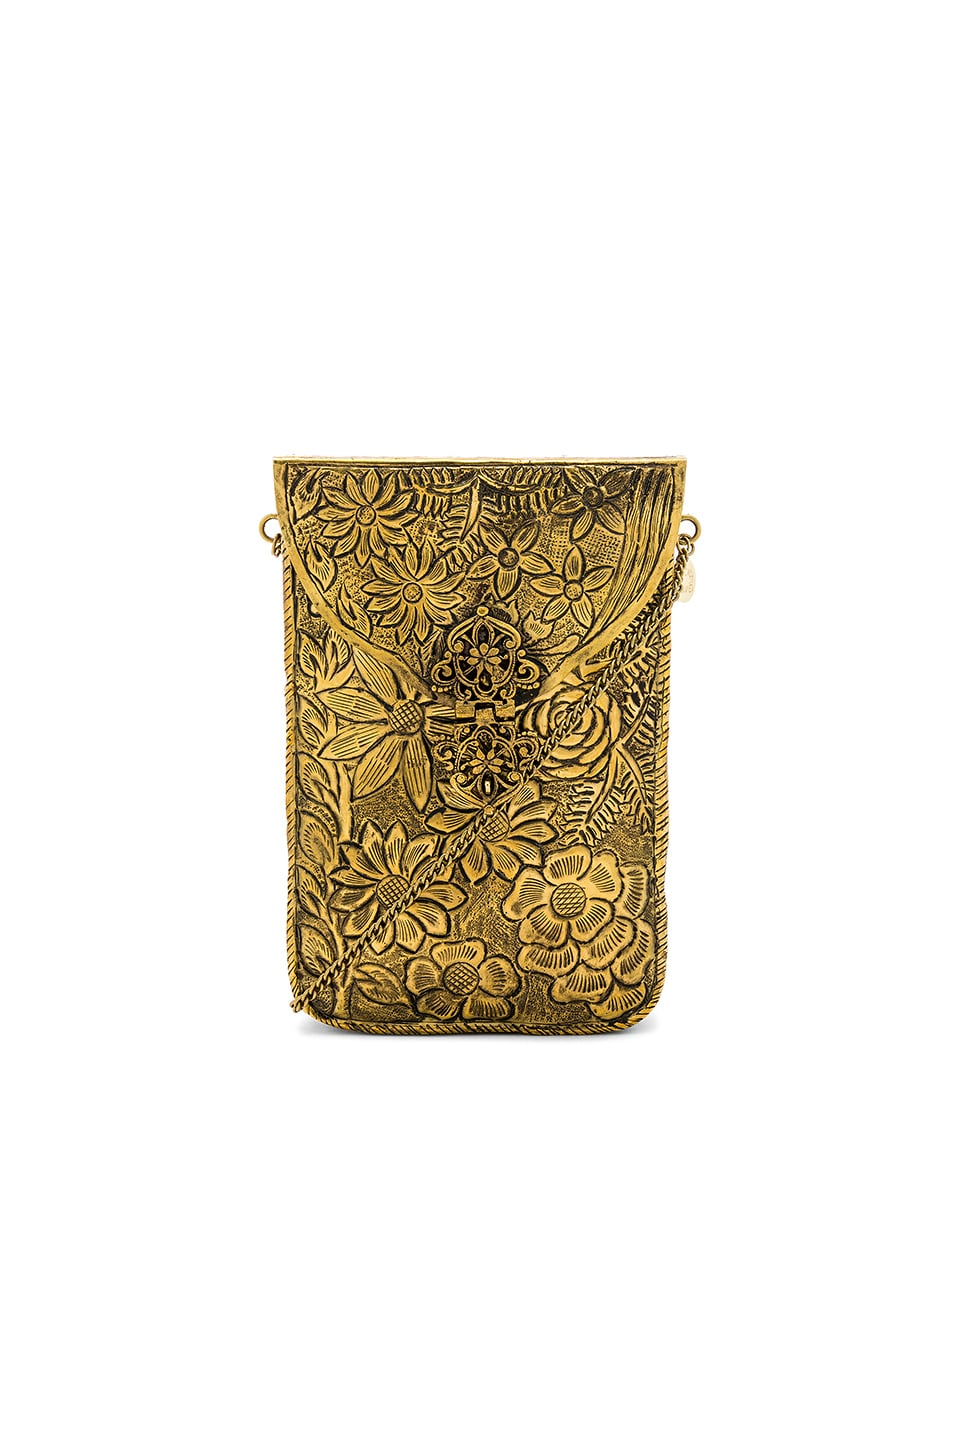 From St Xavier Jasmine Bag in Gold